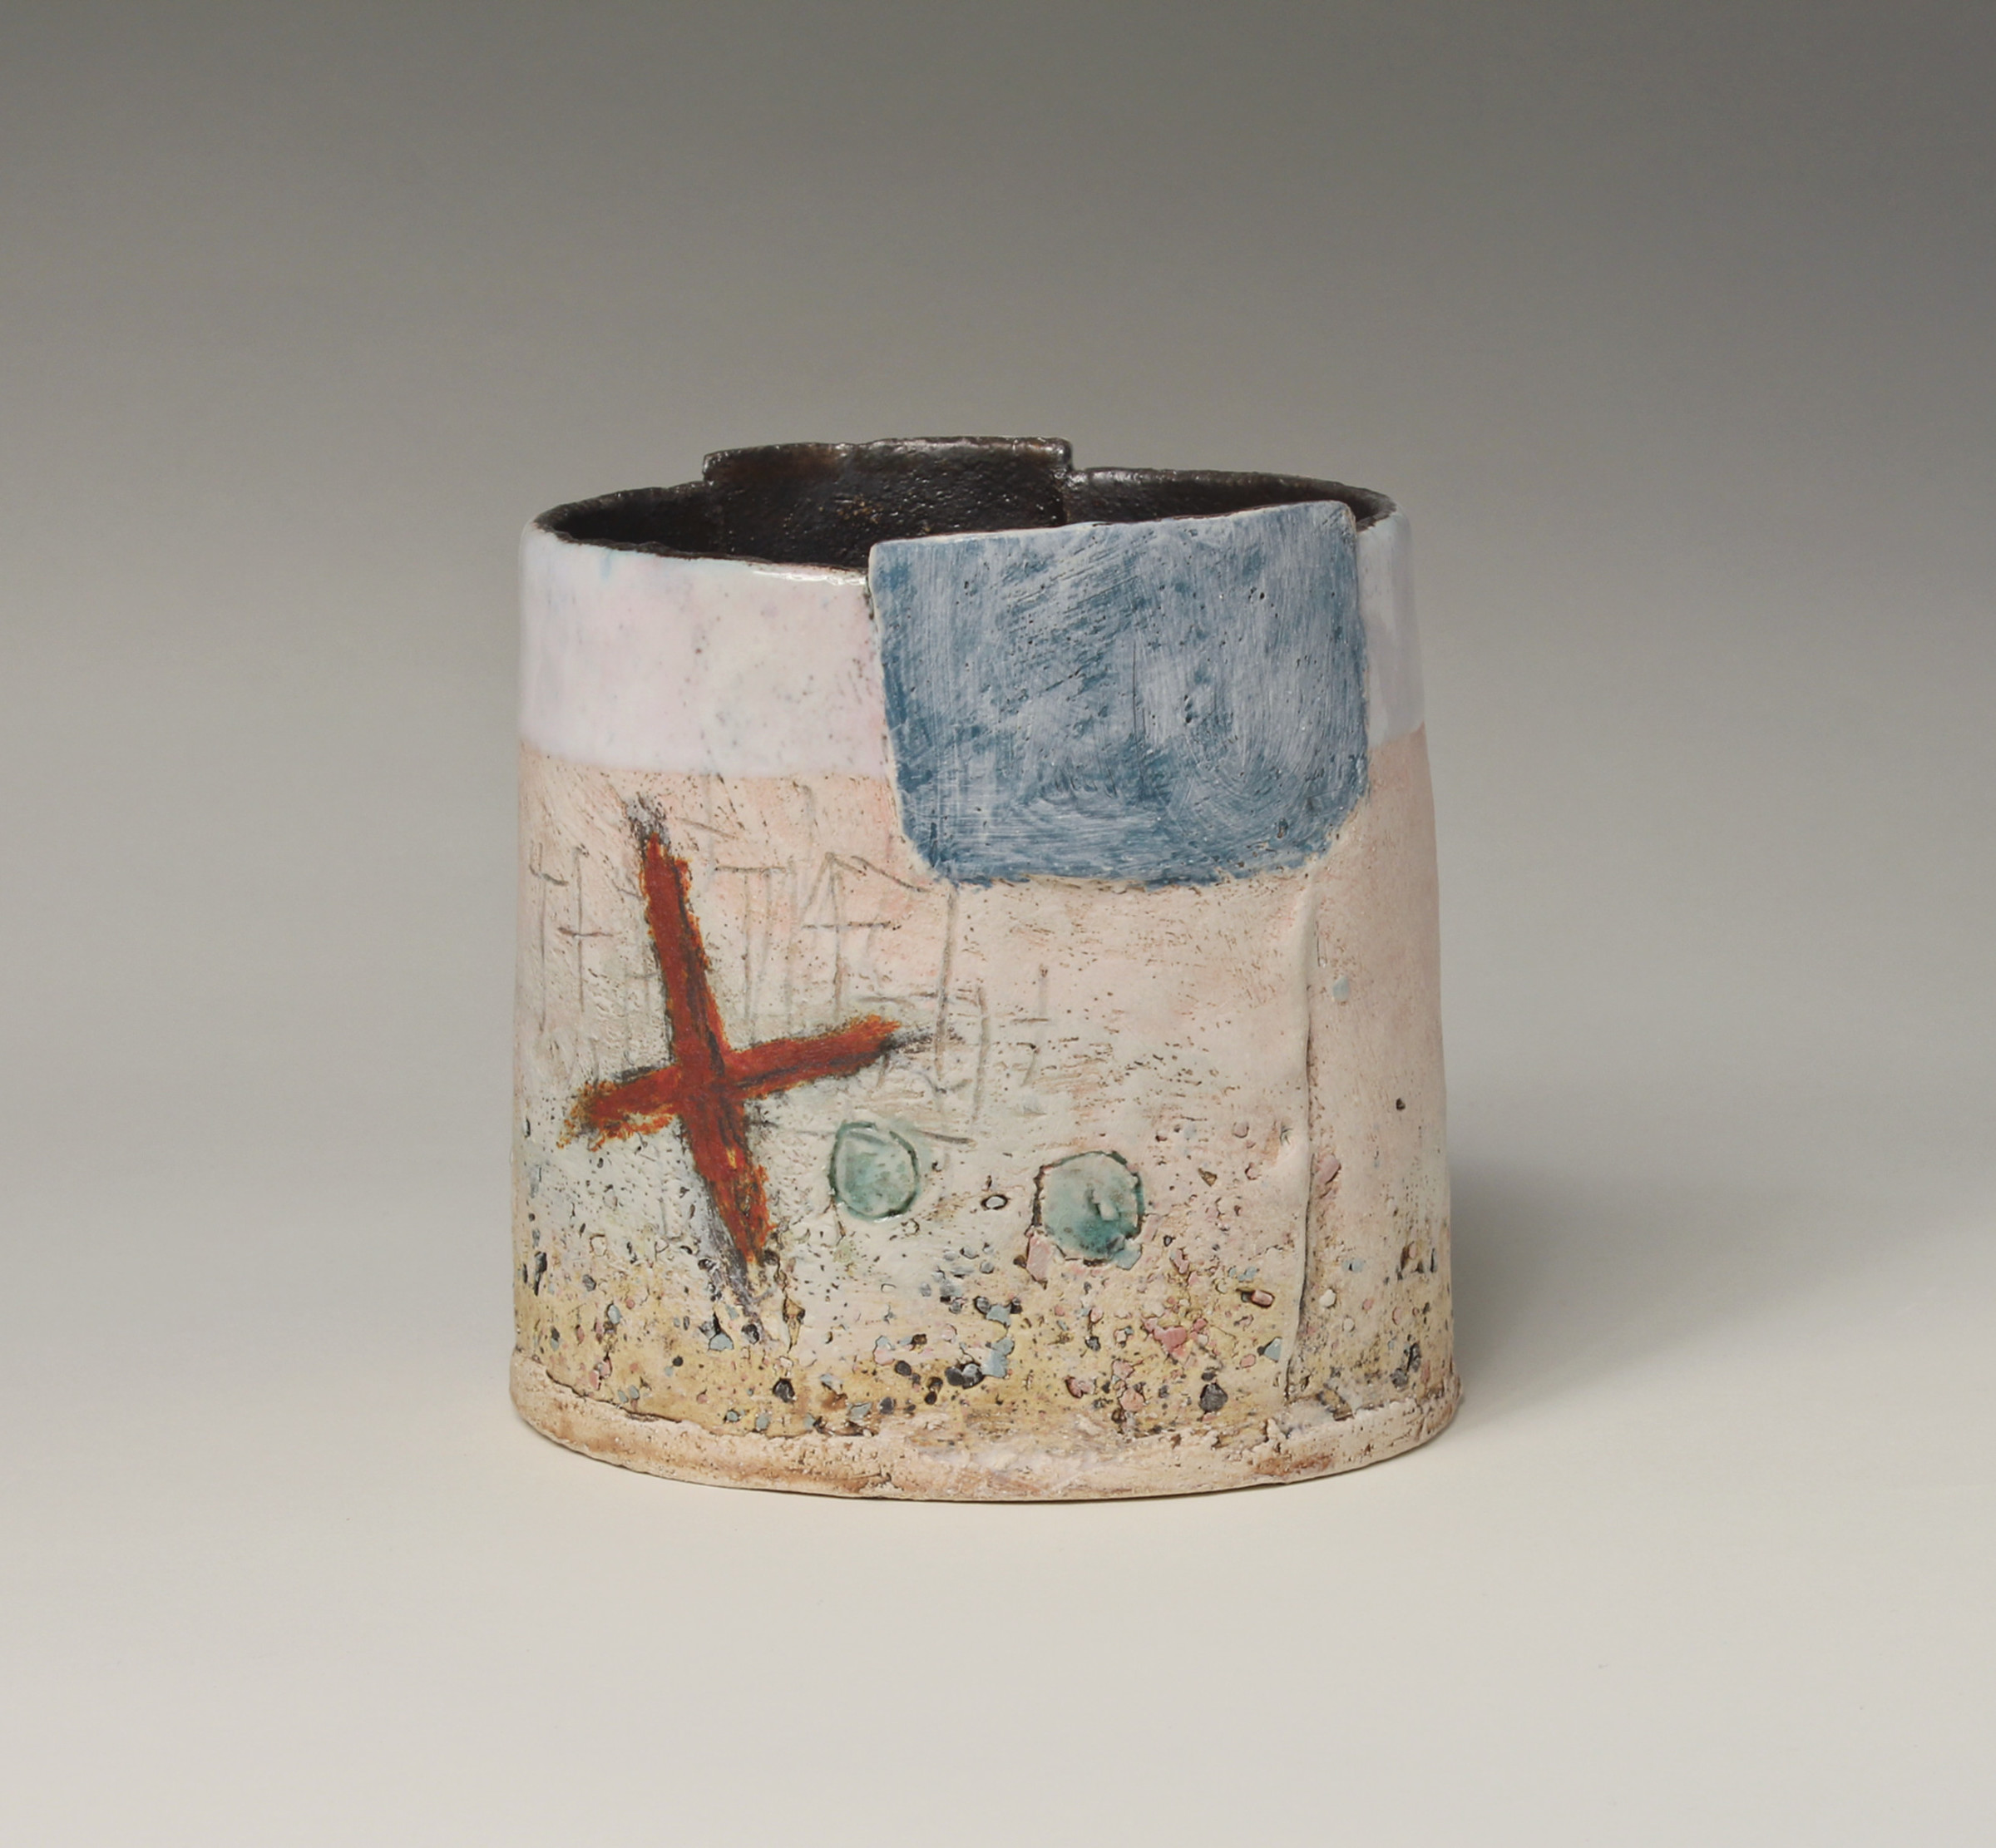 "<span class=""link fancybox-details-link""><a href=""/artists/72-craig-underhill/works/5622-craig-underhill-small-vessel-red-cross-2018/"">View Detail Page</a></span><div class=""artist""><strong>Craig Underhill</strong></div> <div class=""title""><em>Small Vessel - Red Cross </em>, 2018</div> <div class=""medium"">slab-built, engobe layers, slips & glazes</div> <div class=""dimensions"">14 x 14 cm<br /> 5 1/2 x 5 1/2 inches</div><div class=""copyright_line"">£ 17 x 10 Months, OwnArt 0% APR</div>"